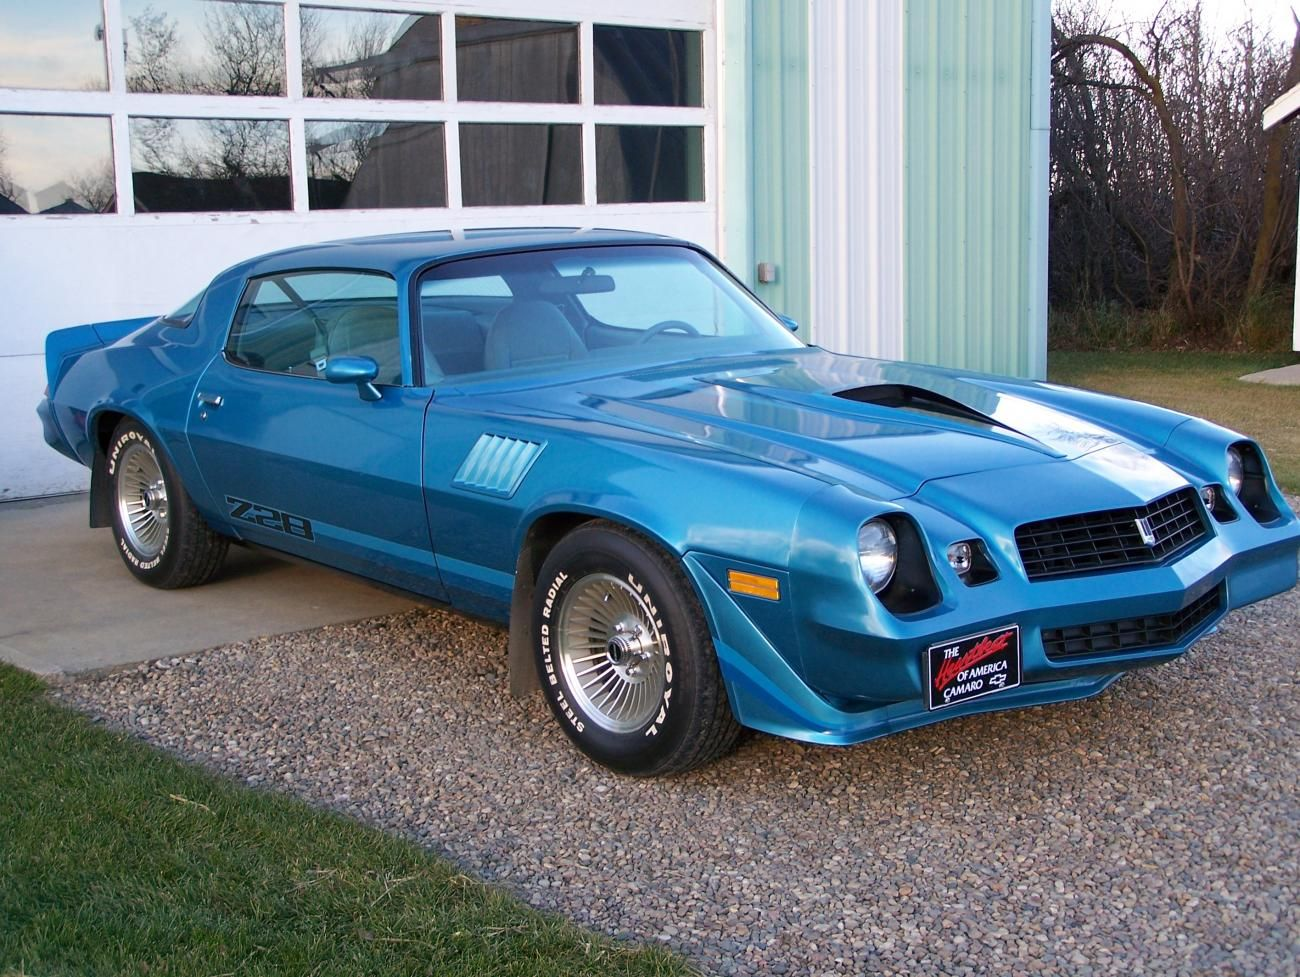 1979 Camaro Z28 Cars Bowtie Pinterest Cars Muscles And Chevrolet